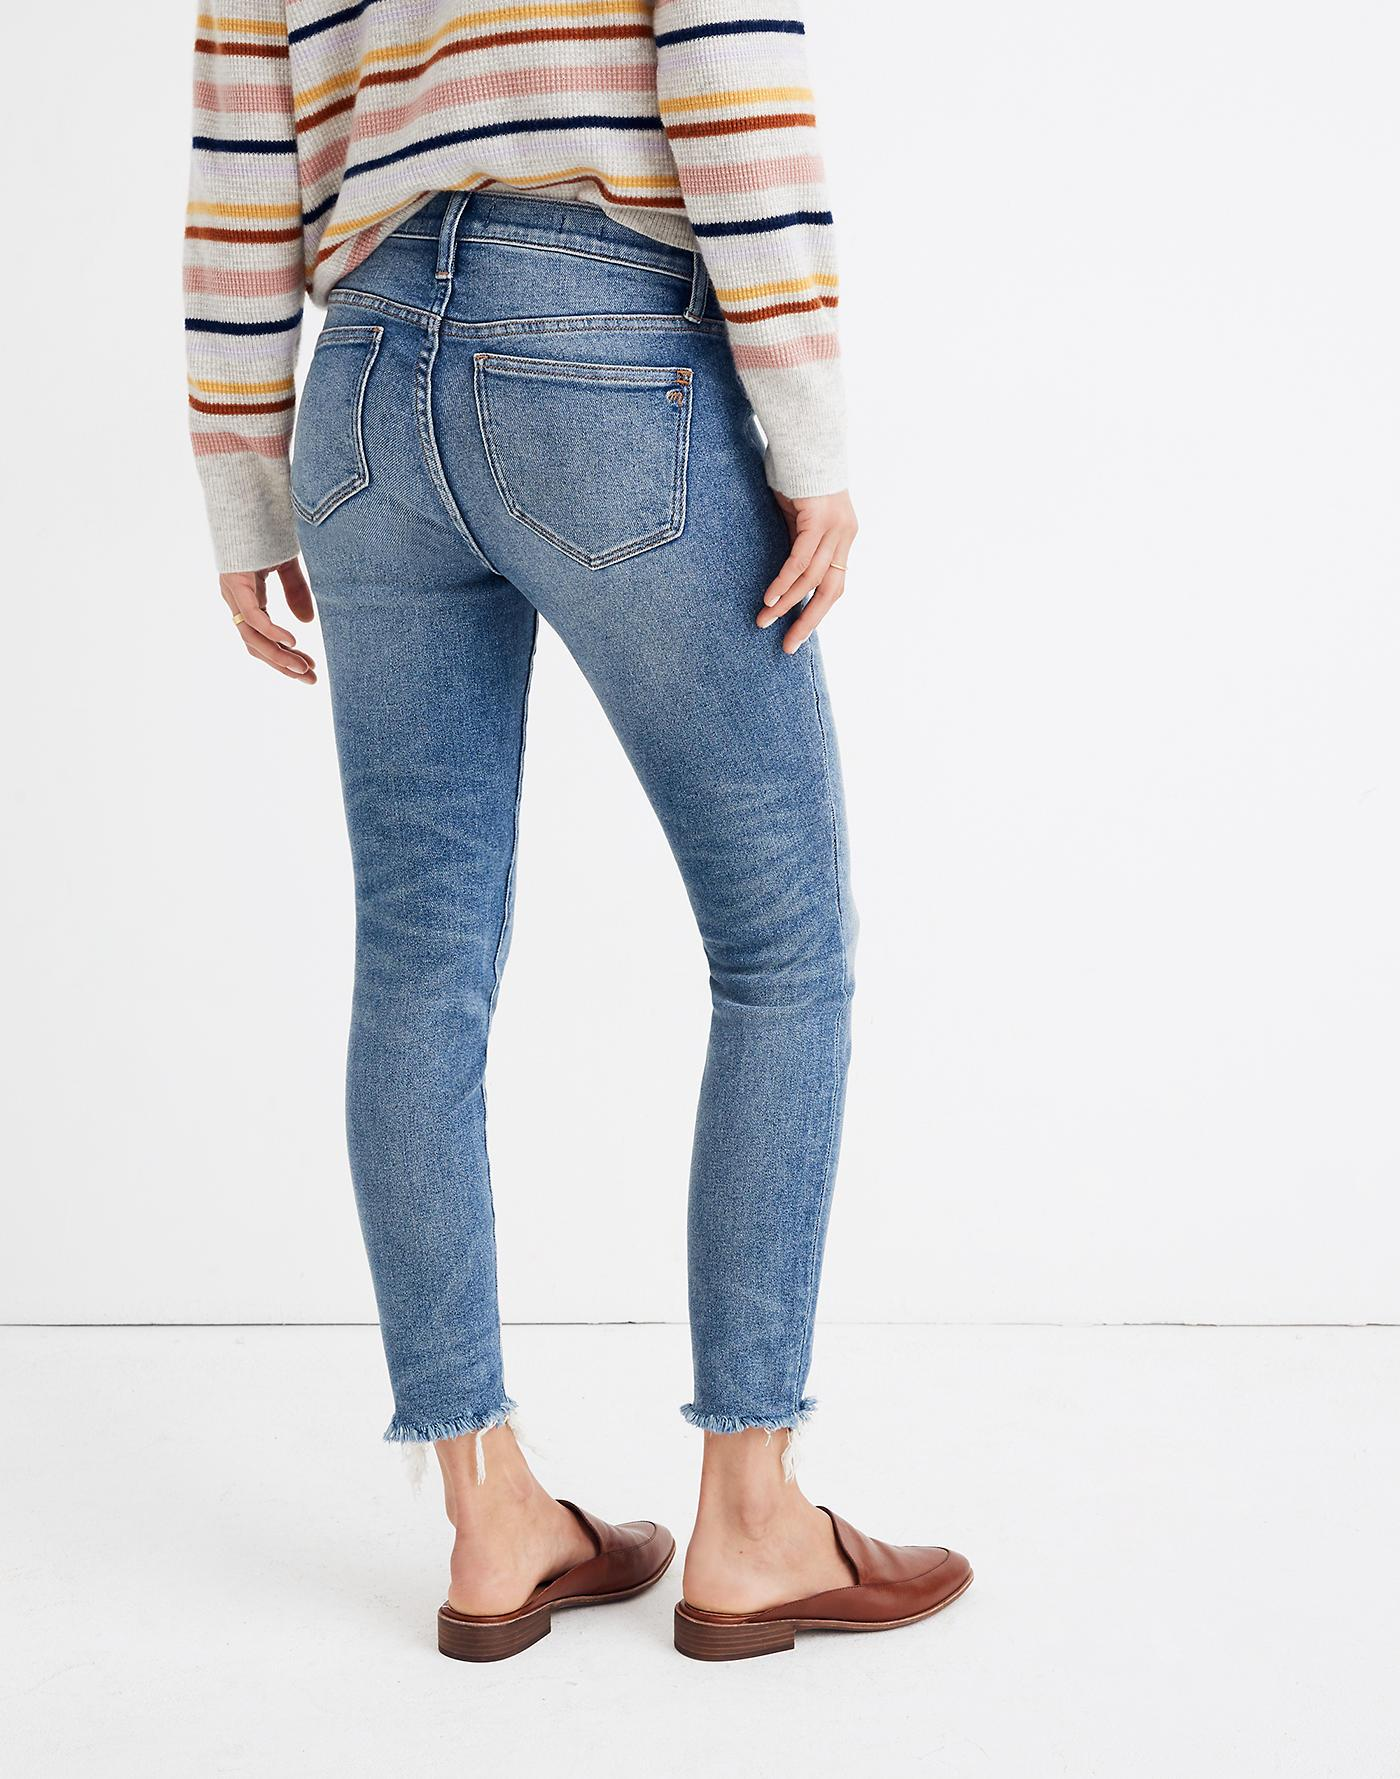 375ba3a6df0f1 Madewell Maternity Side-panel Skinny Jeans In Cordova Wash ...